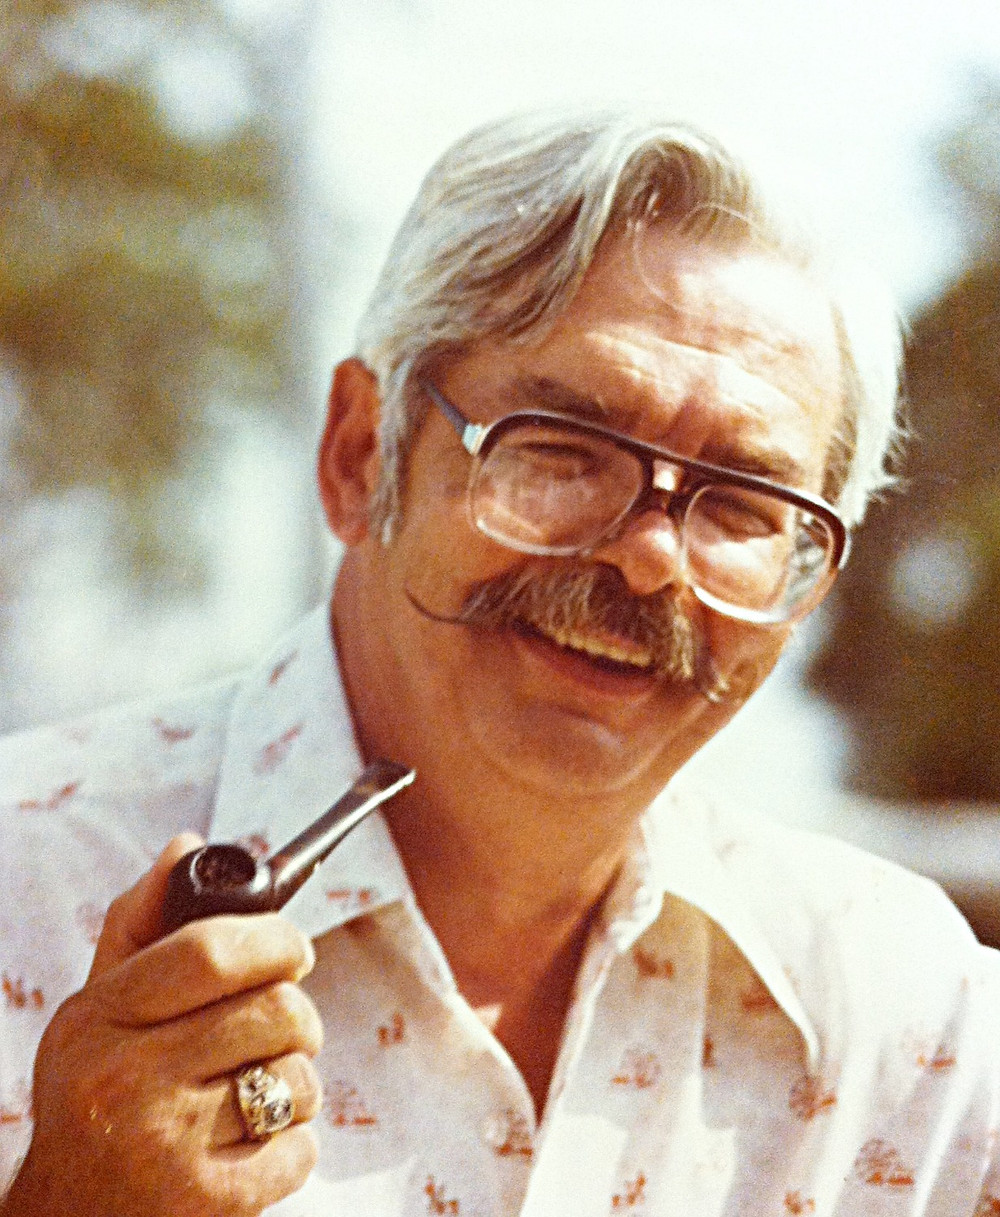 Old family photograph of Kate Monihan's dad, Alan Schroeder. An artist's father was inspiration.